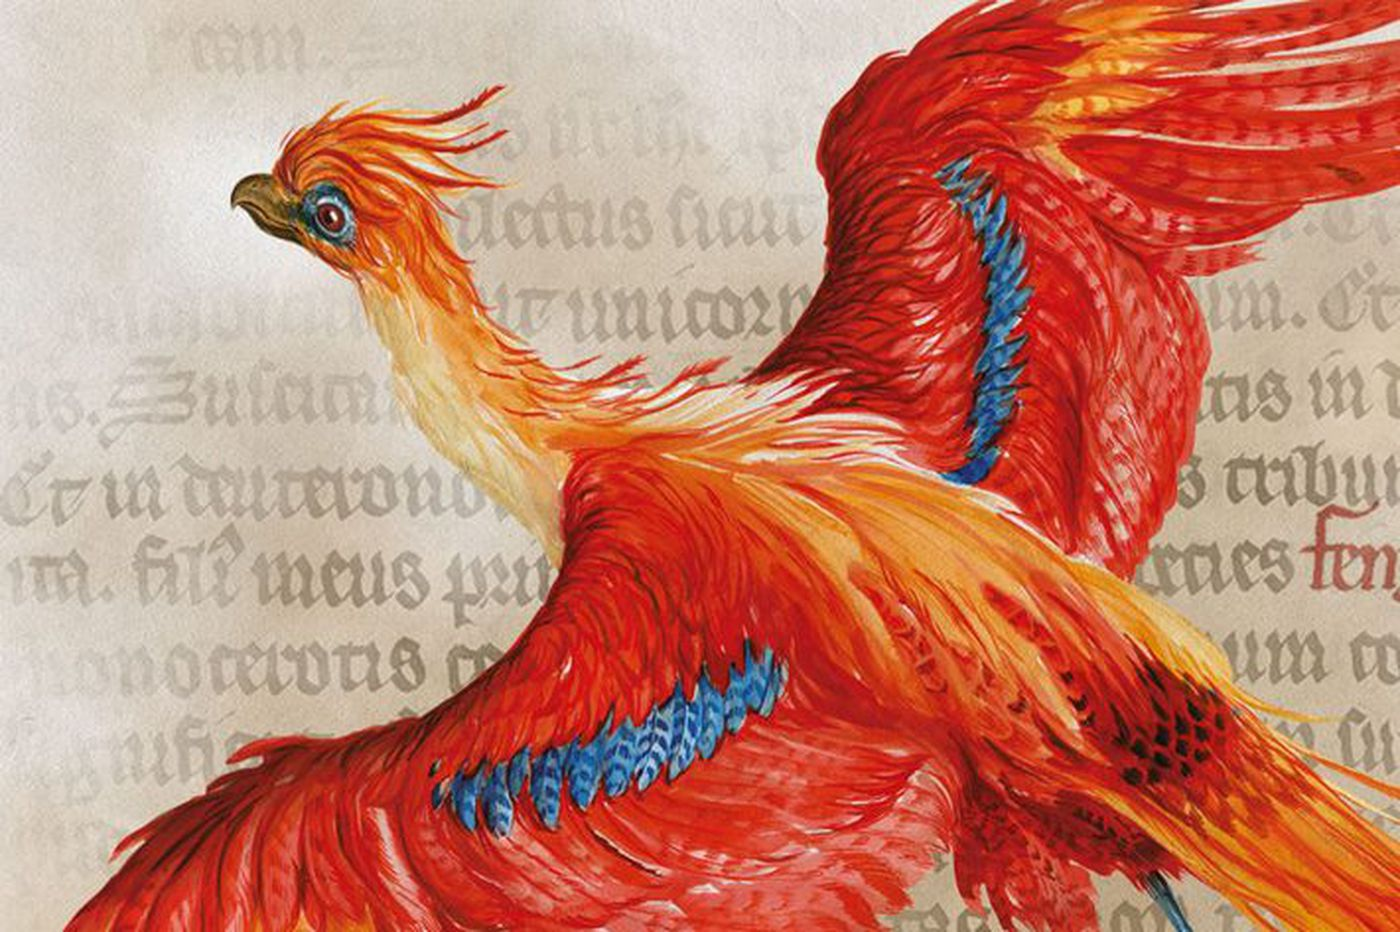 Broadway Beat: 'Harry Potter' play now has a major history exhibit, too